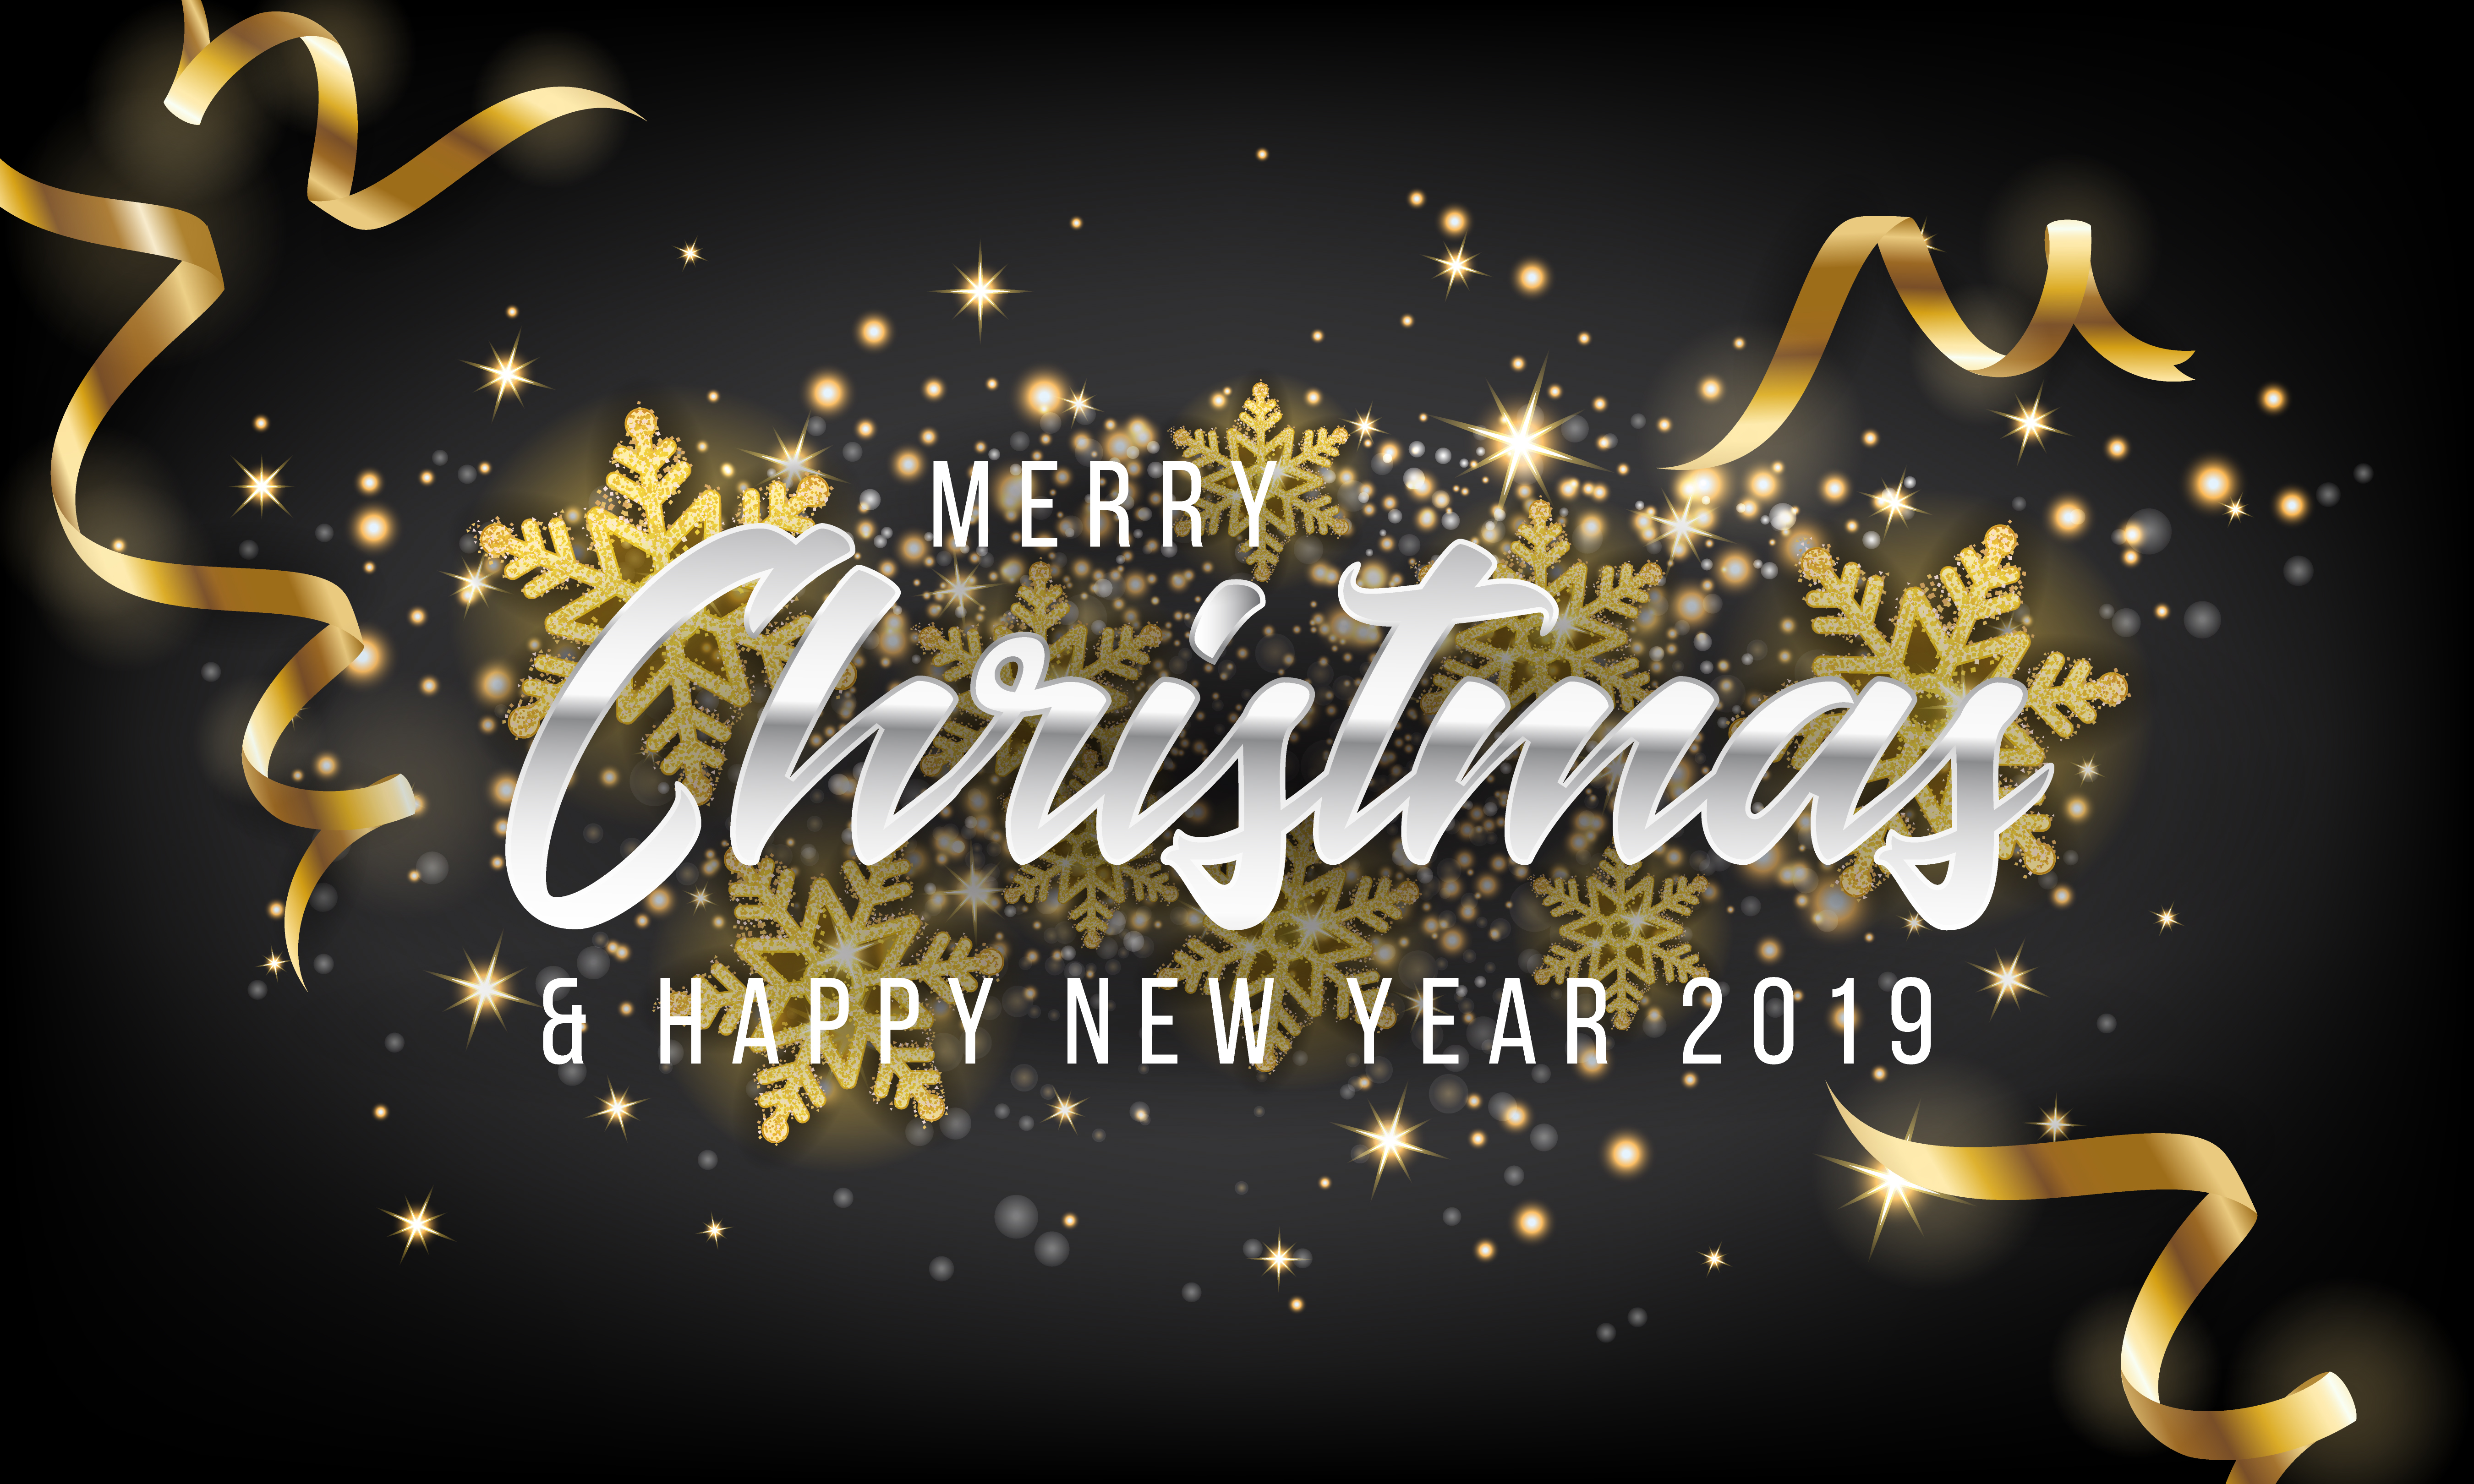 Christmas Graphics 2019.Gold Christmas Free Vector Art 11 059 Free Downloads